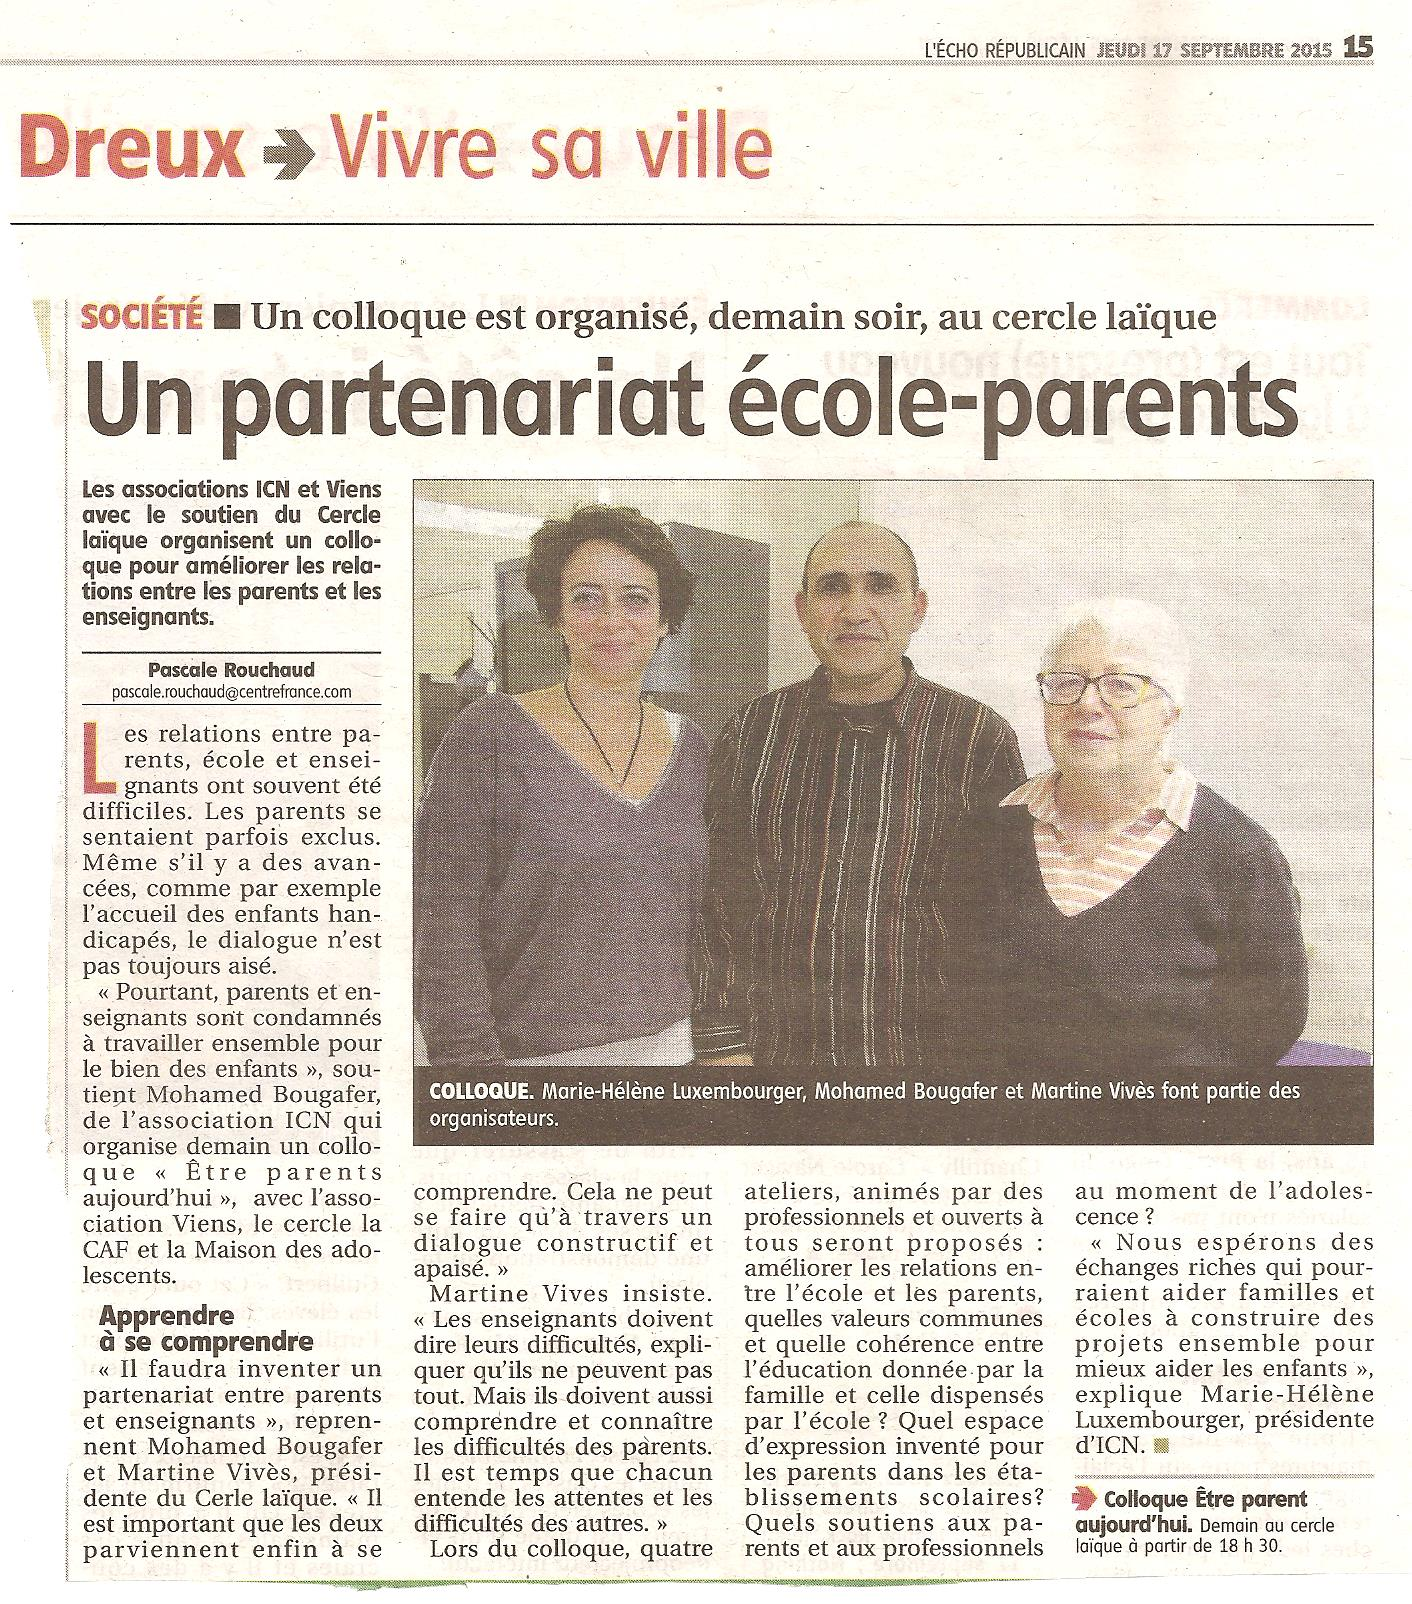 Colloque tre parent